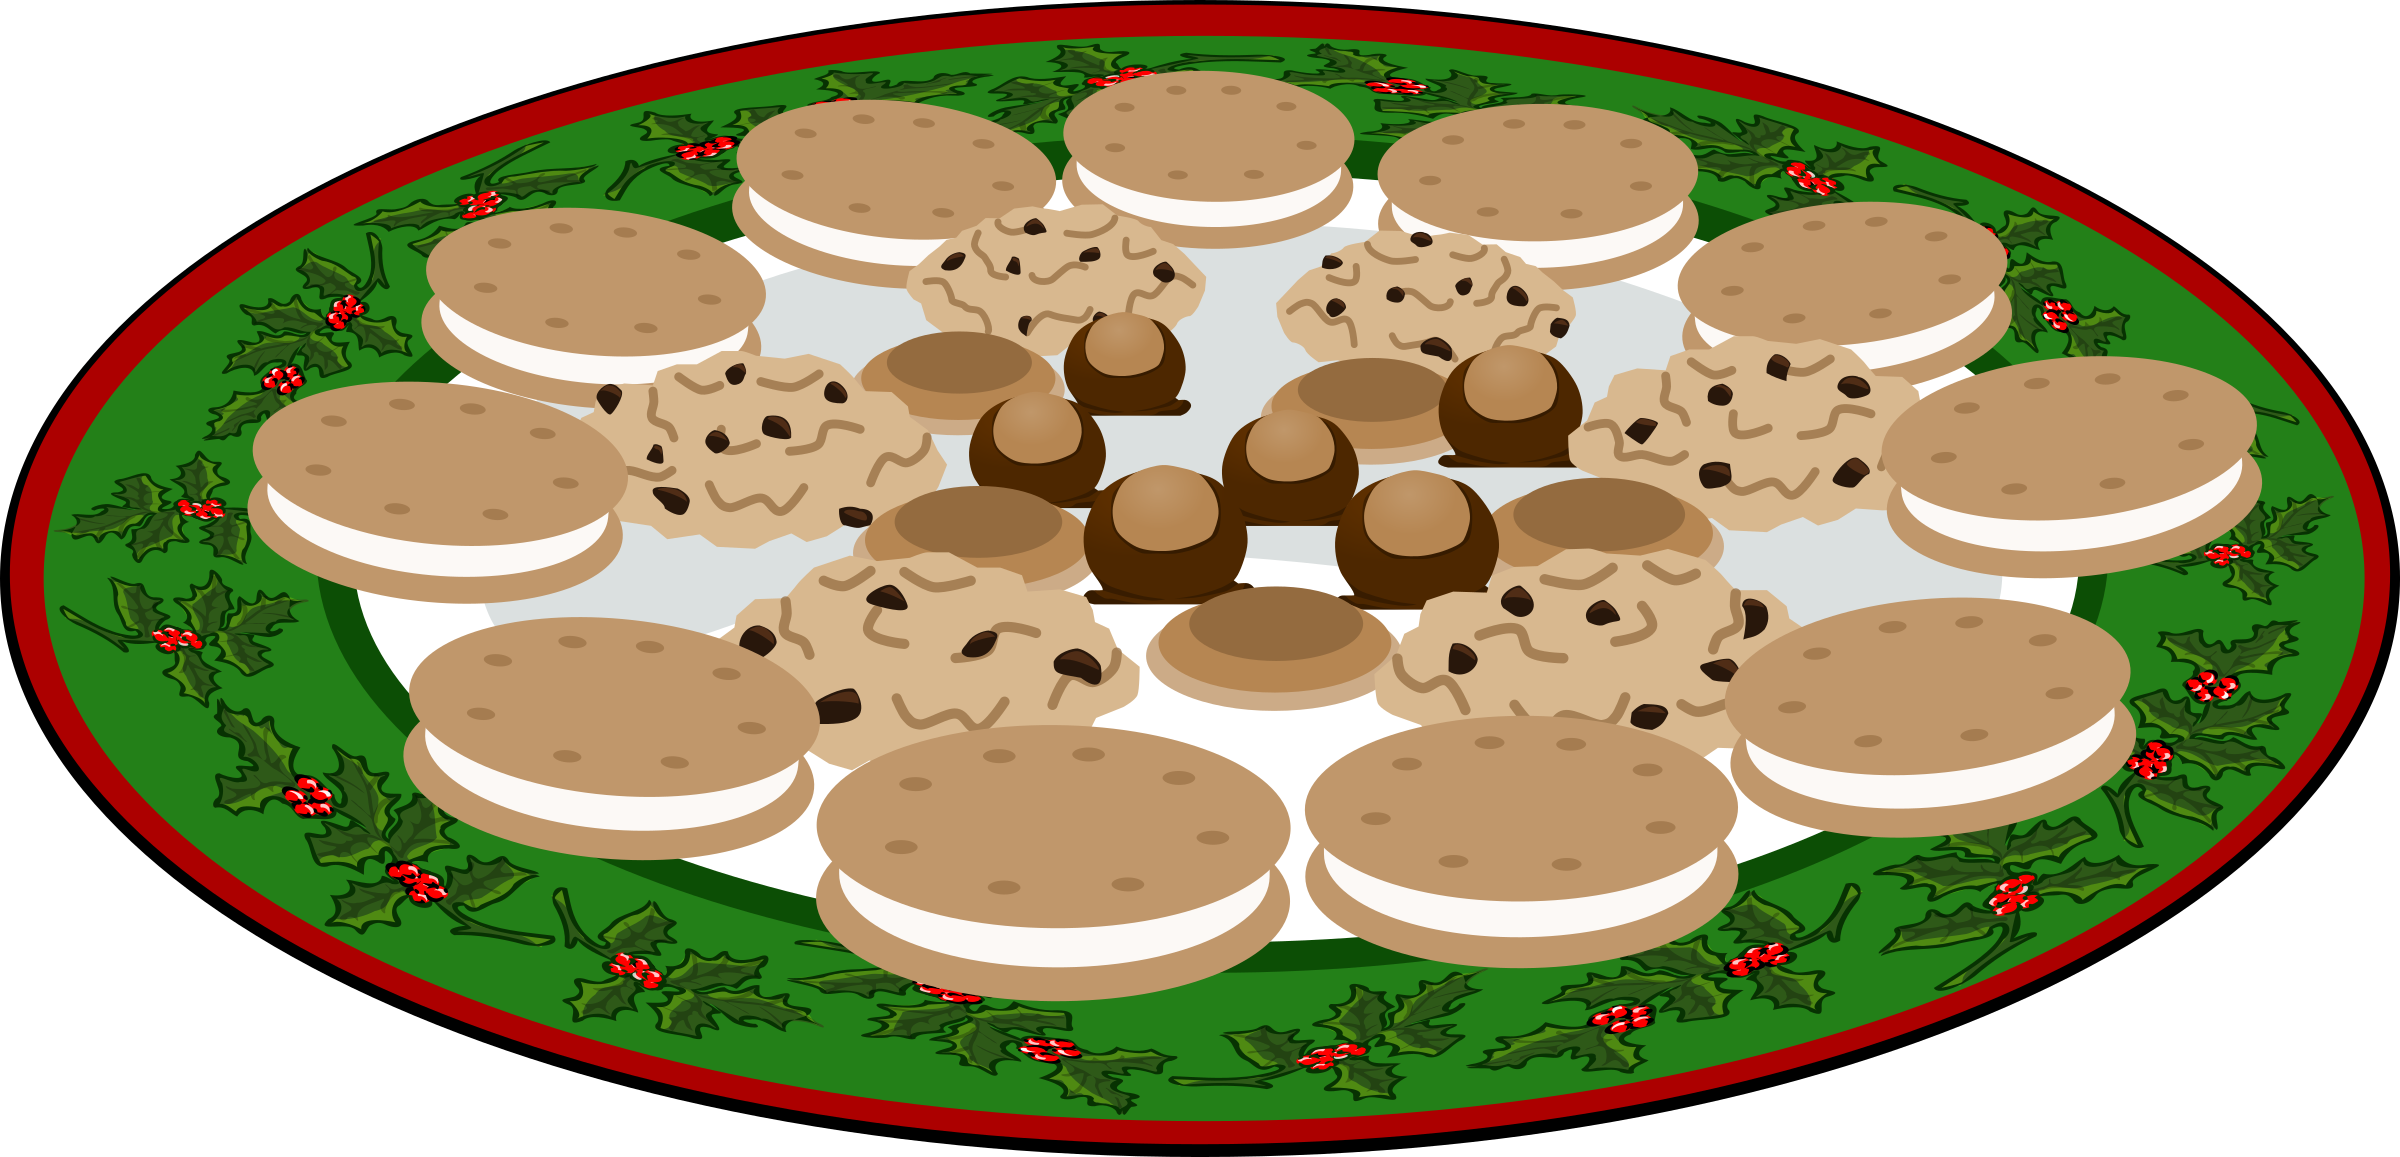 Plate Of Cookies Clipart 7.